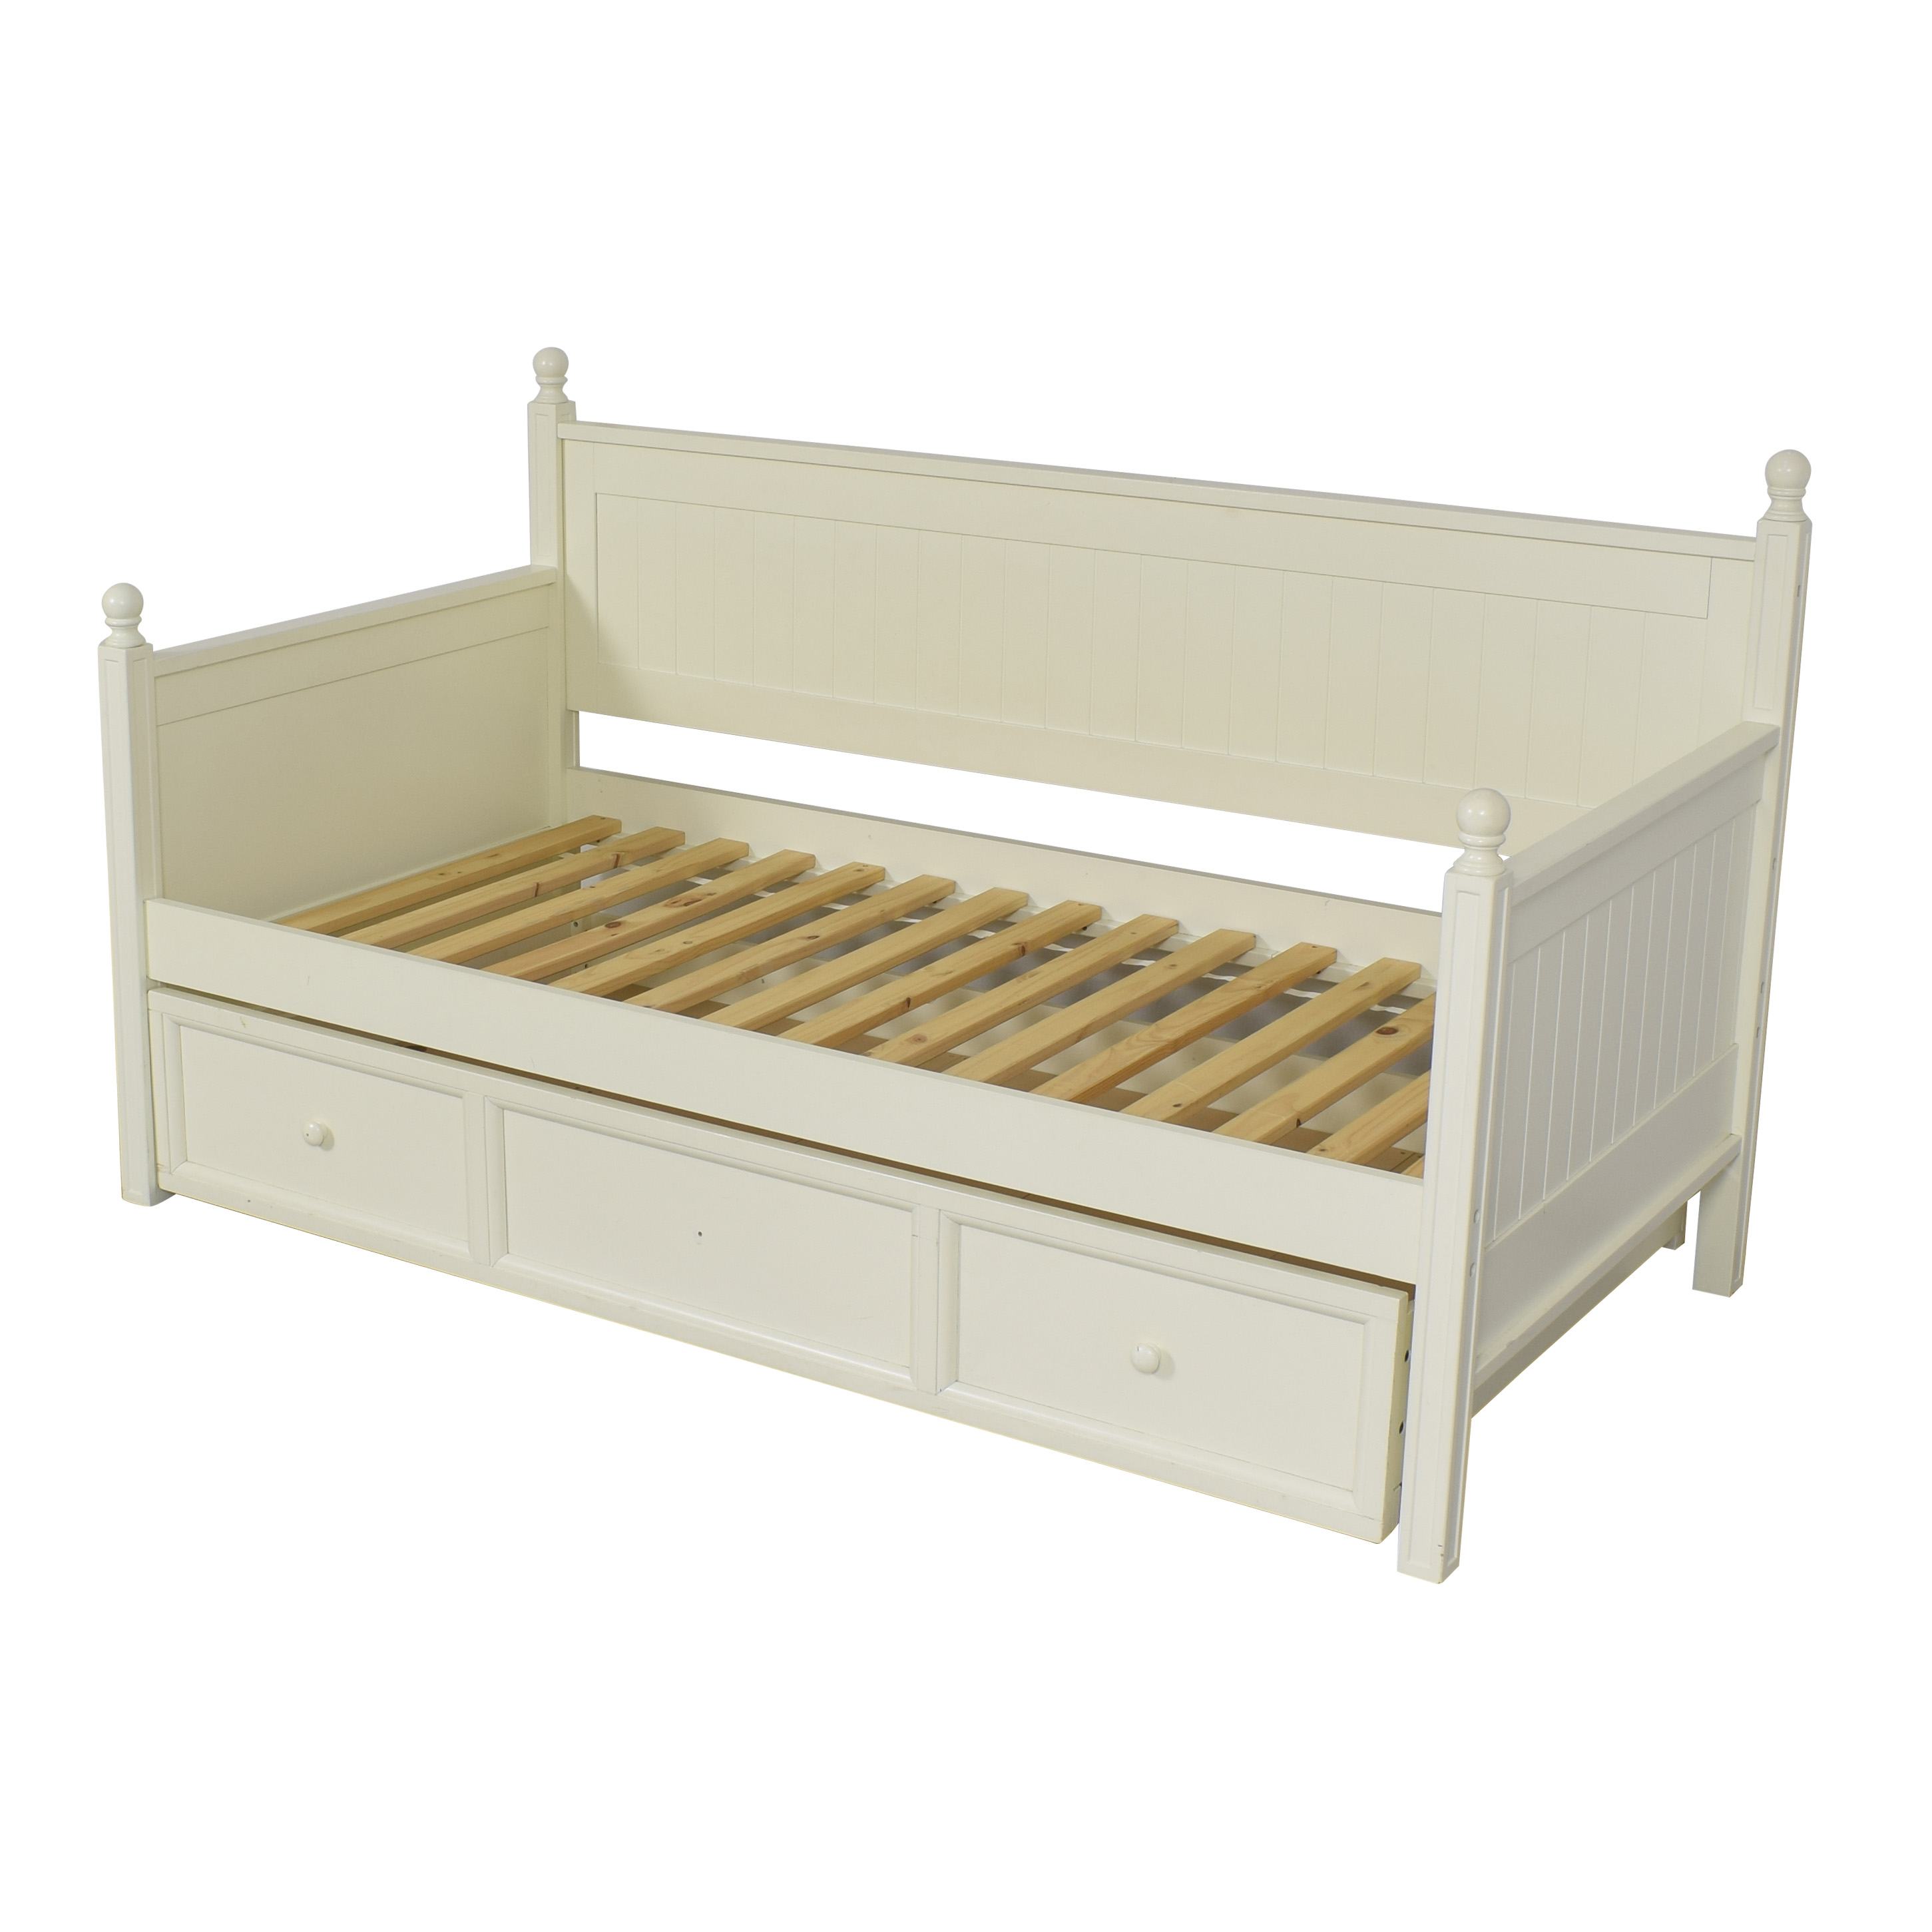 Pottery Barn Teen Pottery Barn Teen Hampton Twin Daybed and Trundle white